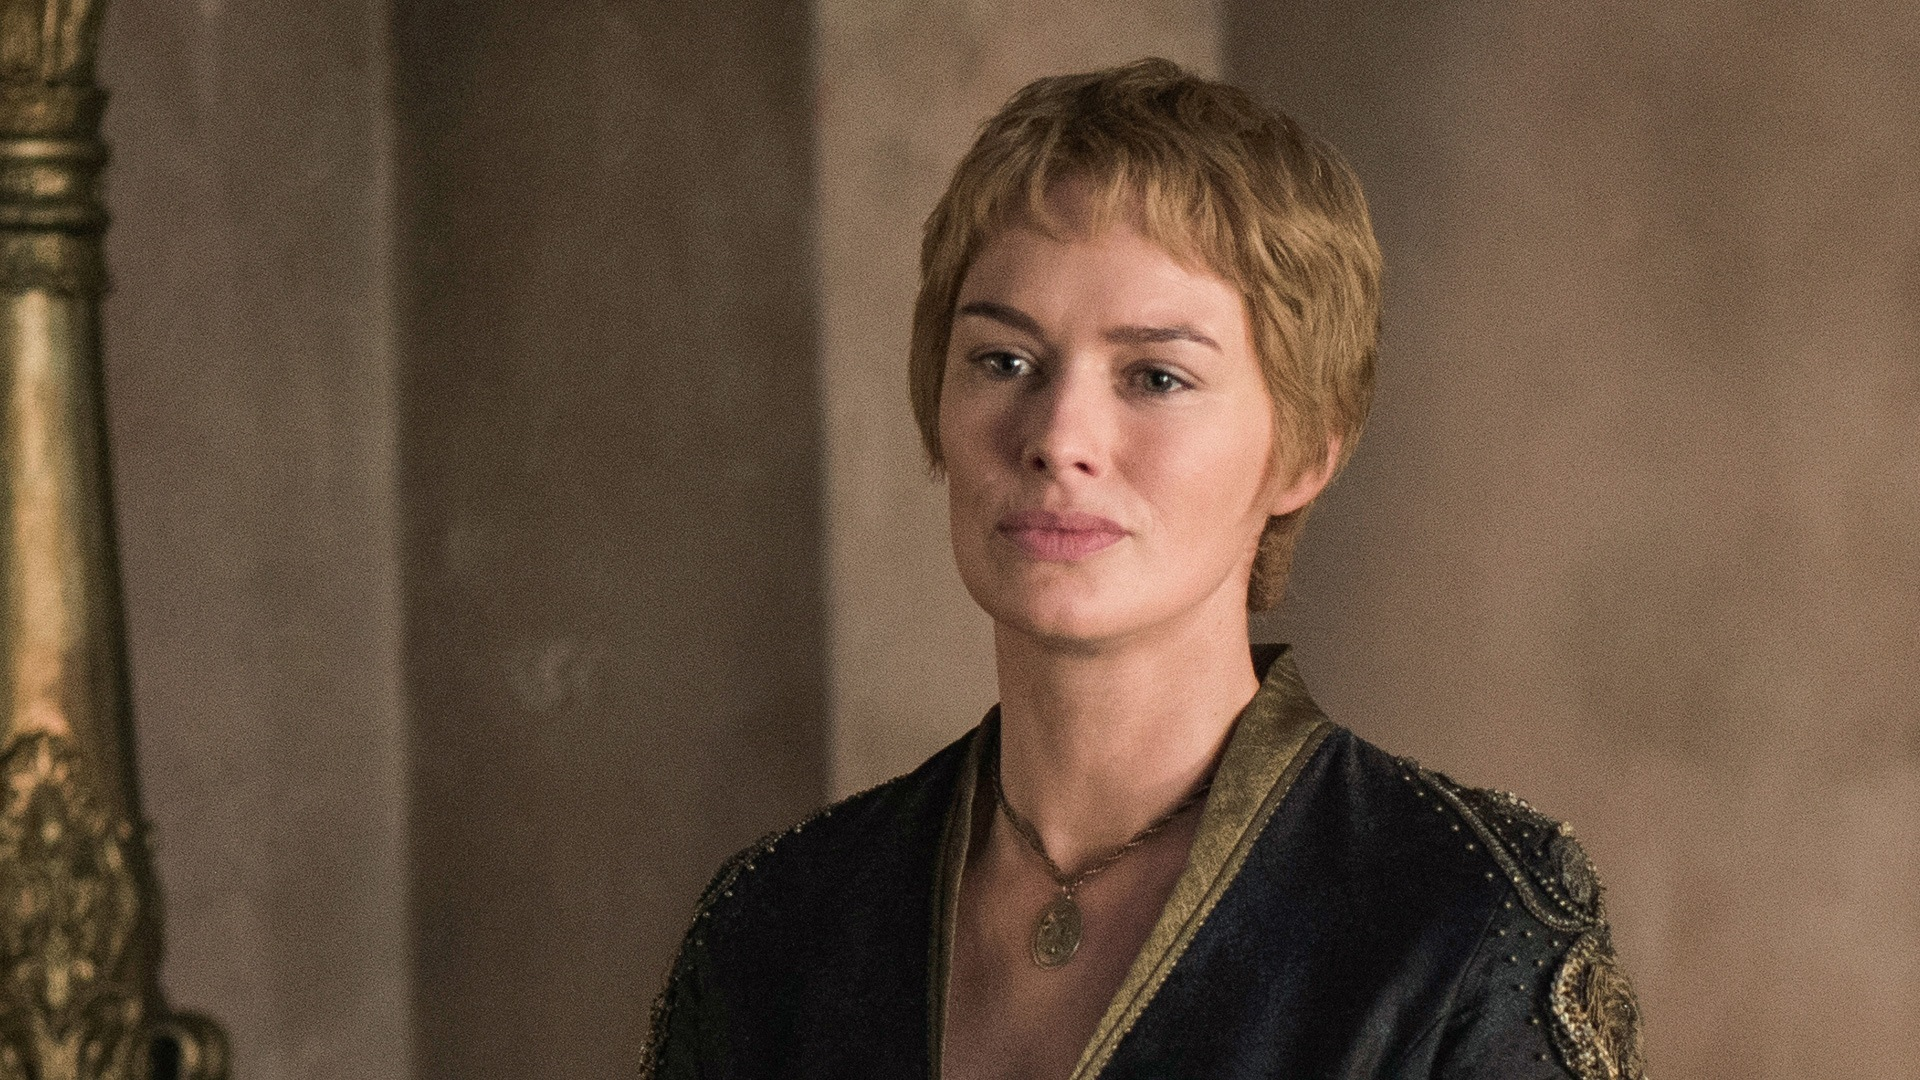 Cersei Lannister stares ahead in Game of Thrones